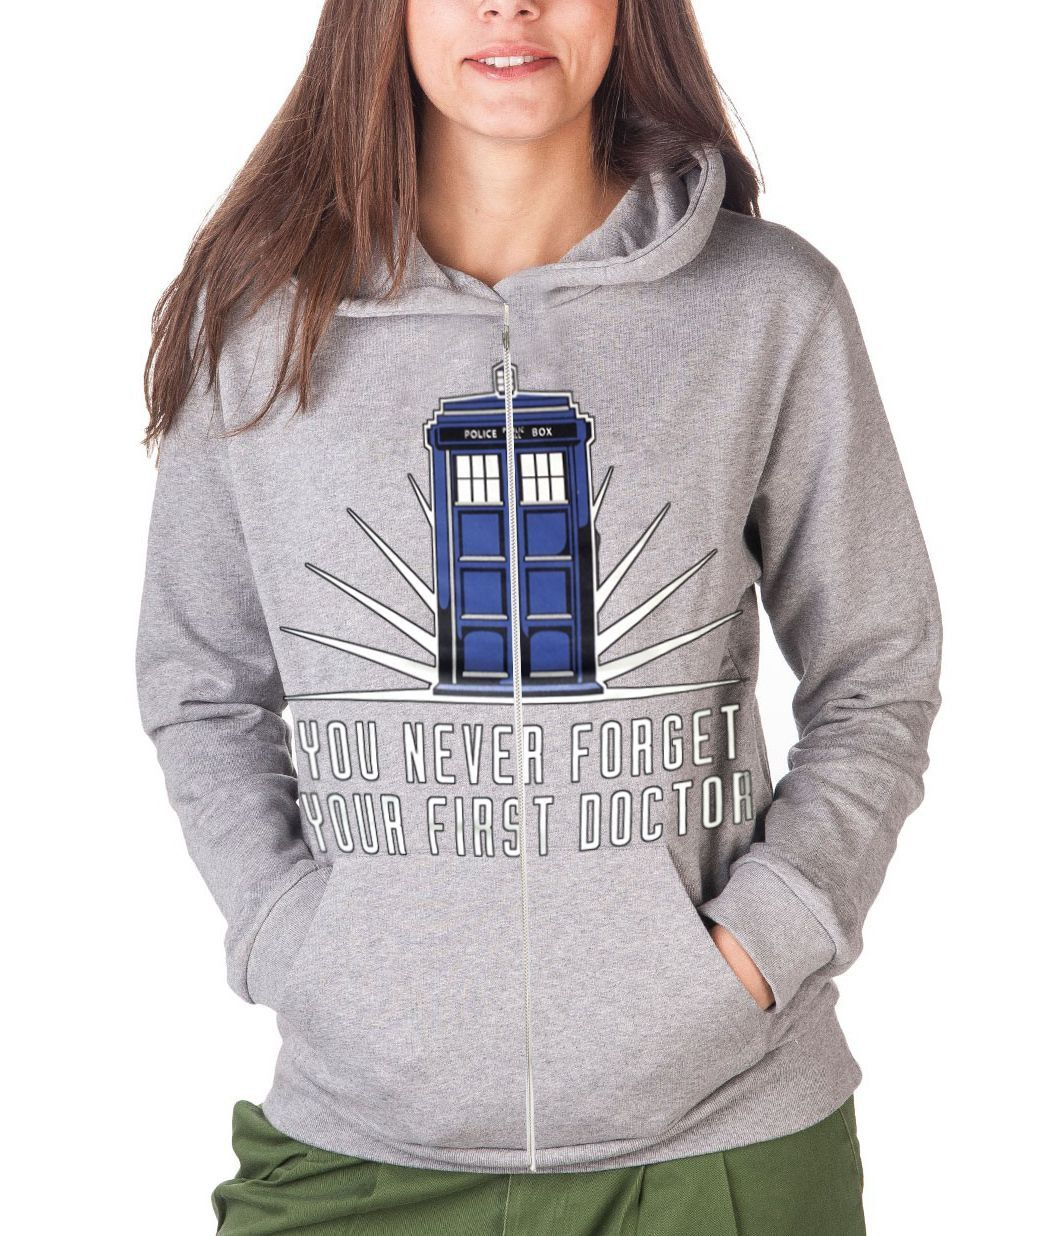 DOCTOR WHO TARDIS - YOU NEVER FORGET YOUR FIRST DOCTOR - GREY GIRLS HOODIE